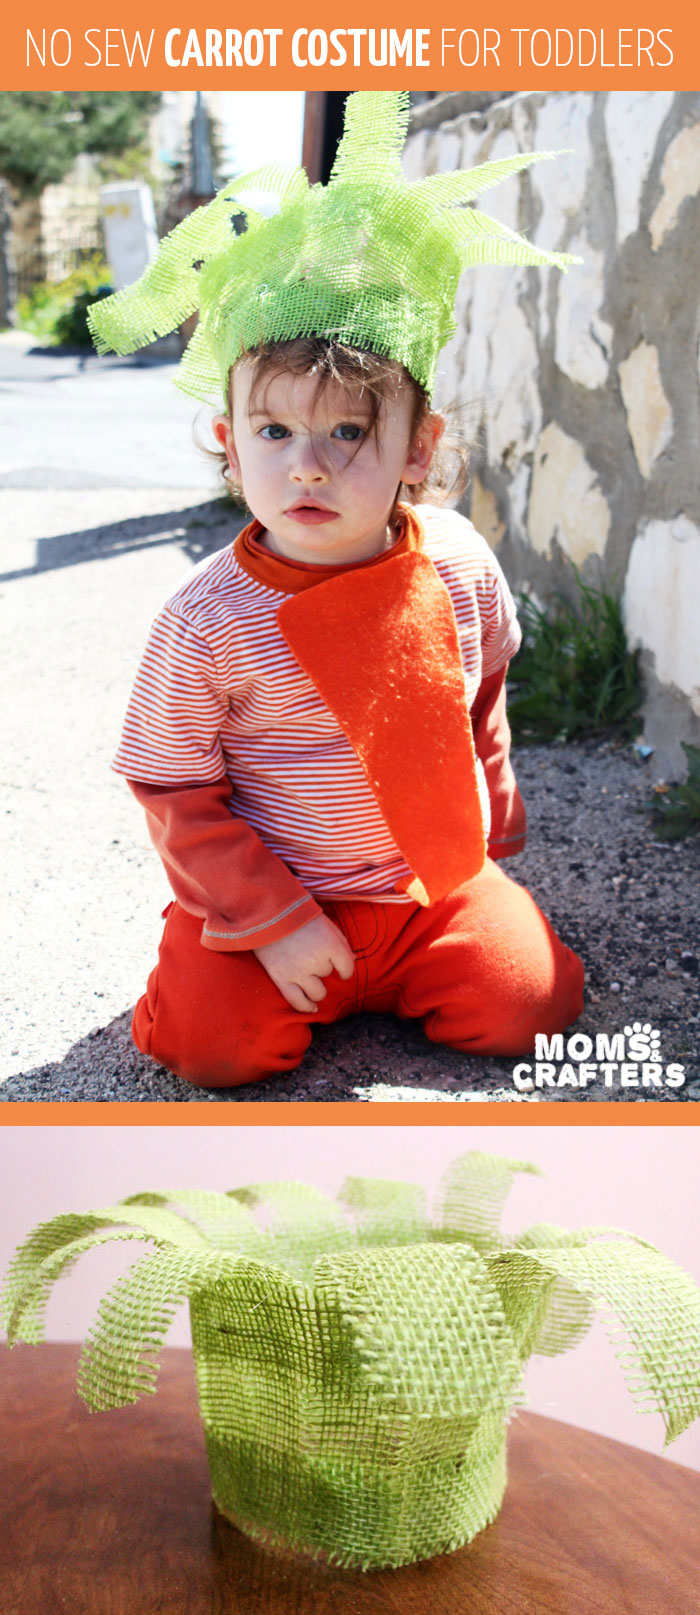 I love this Halloween costume for toddlers - such a great DIY idea! Itu0027s a  sc 1 st  Moms and Crafters & DIY No Sew Carrot Costume for Toddlers - Moms and Crafters